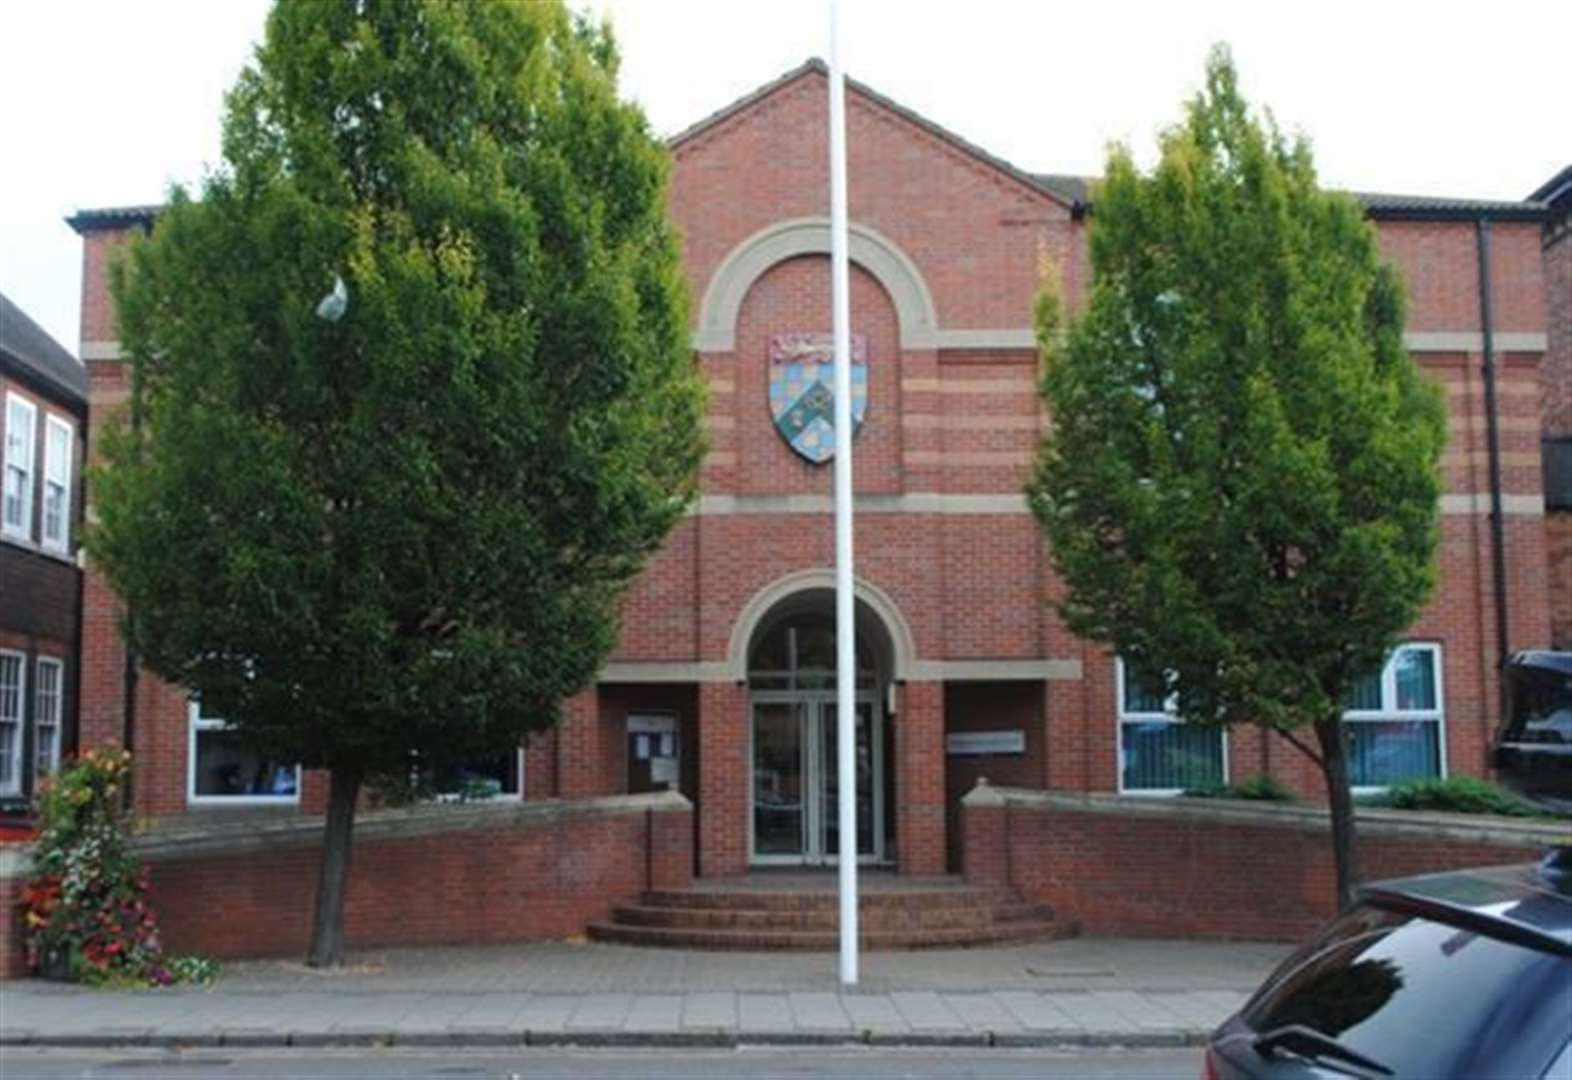 Candidates revealed for the district council elections in the Grantham area of South Kesteven